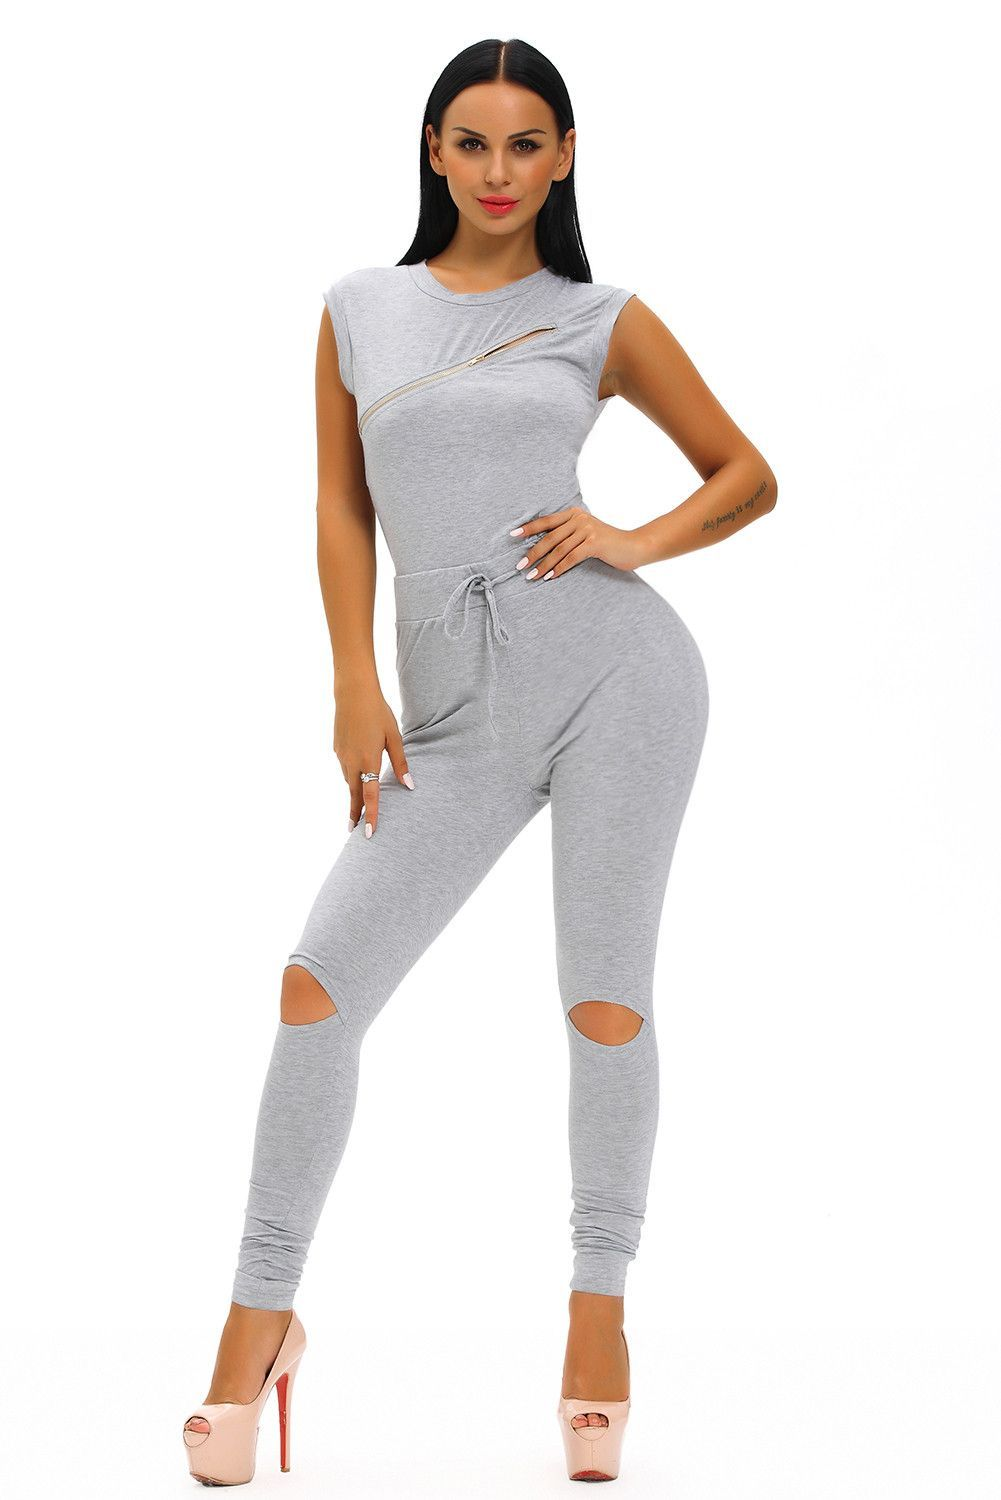 Chasubles & Grenouilleres Creative Zip Line Gris Stretchy Jumpsuit Pas Cher www.modebuy.com @Modebuy #Modebuy #Gris #me #sexy #ilovemyfollowersfashion